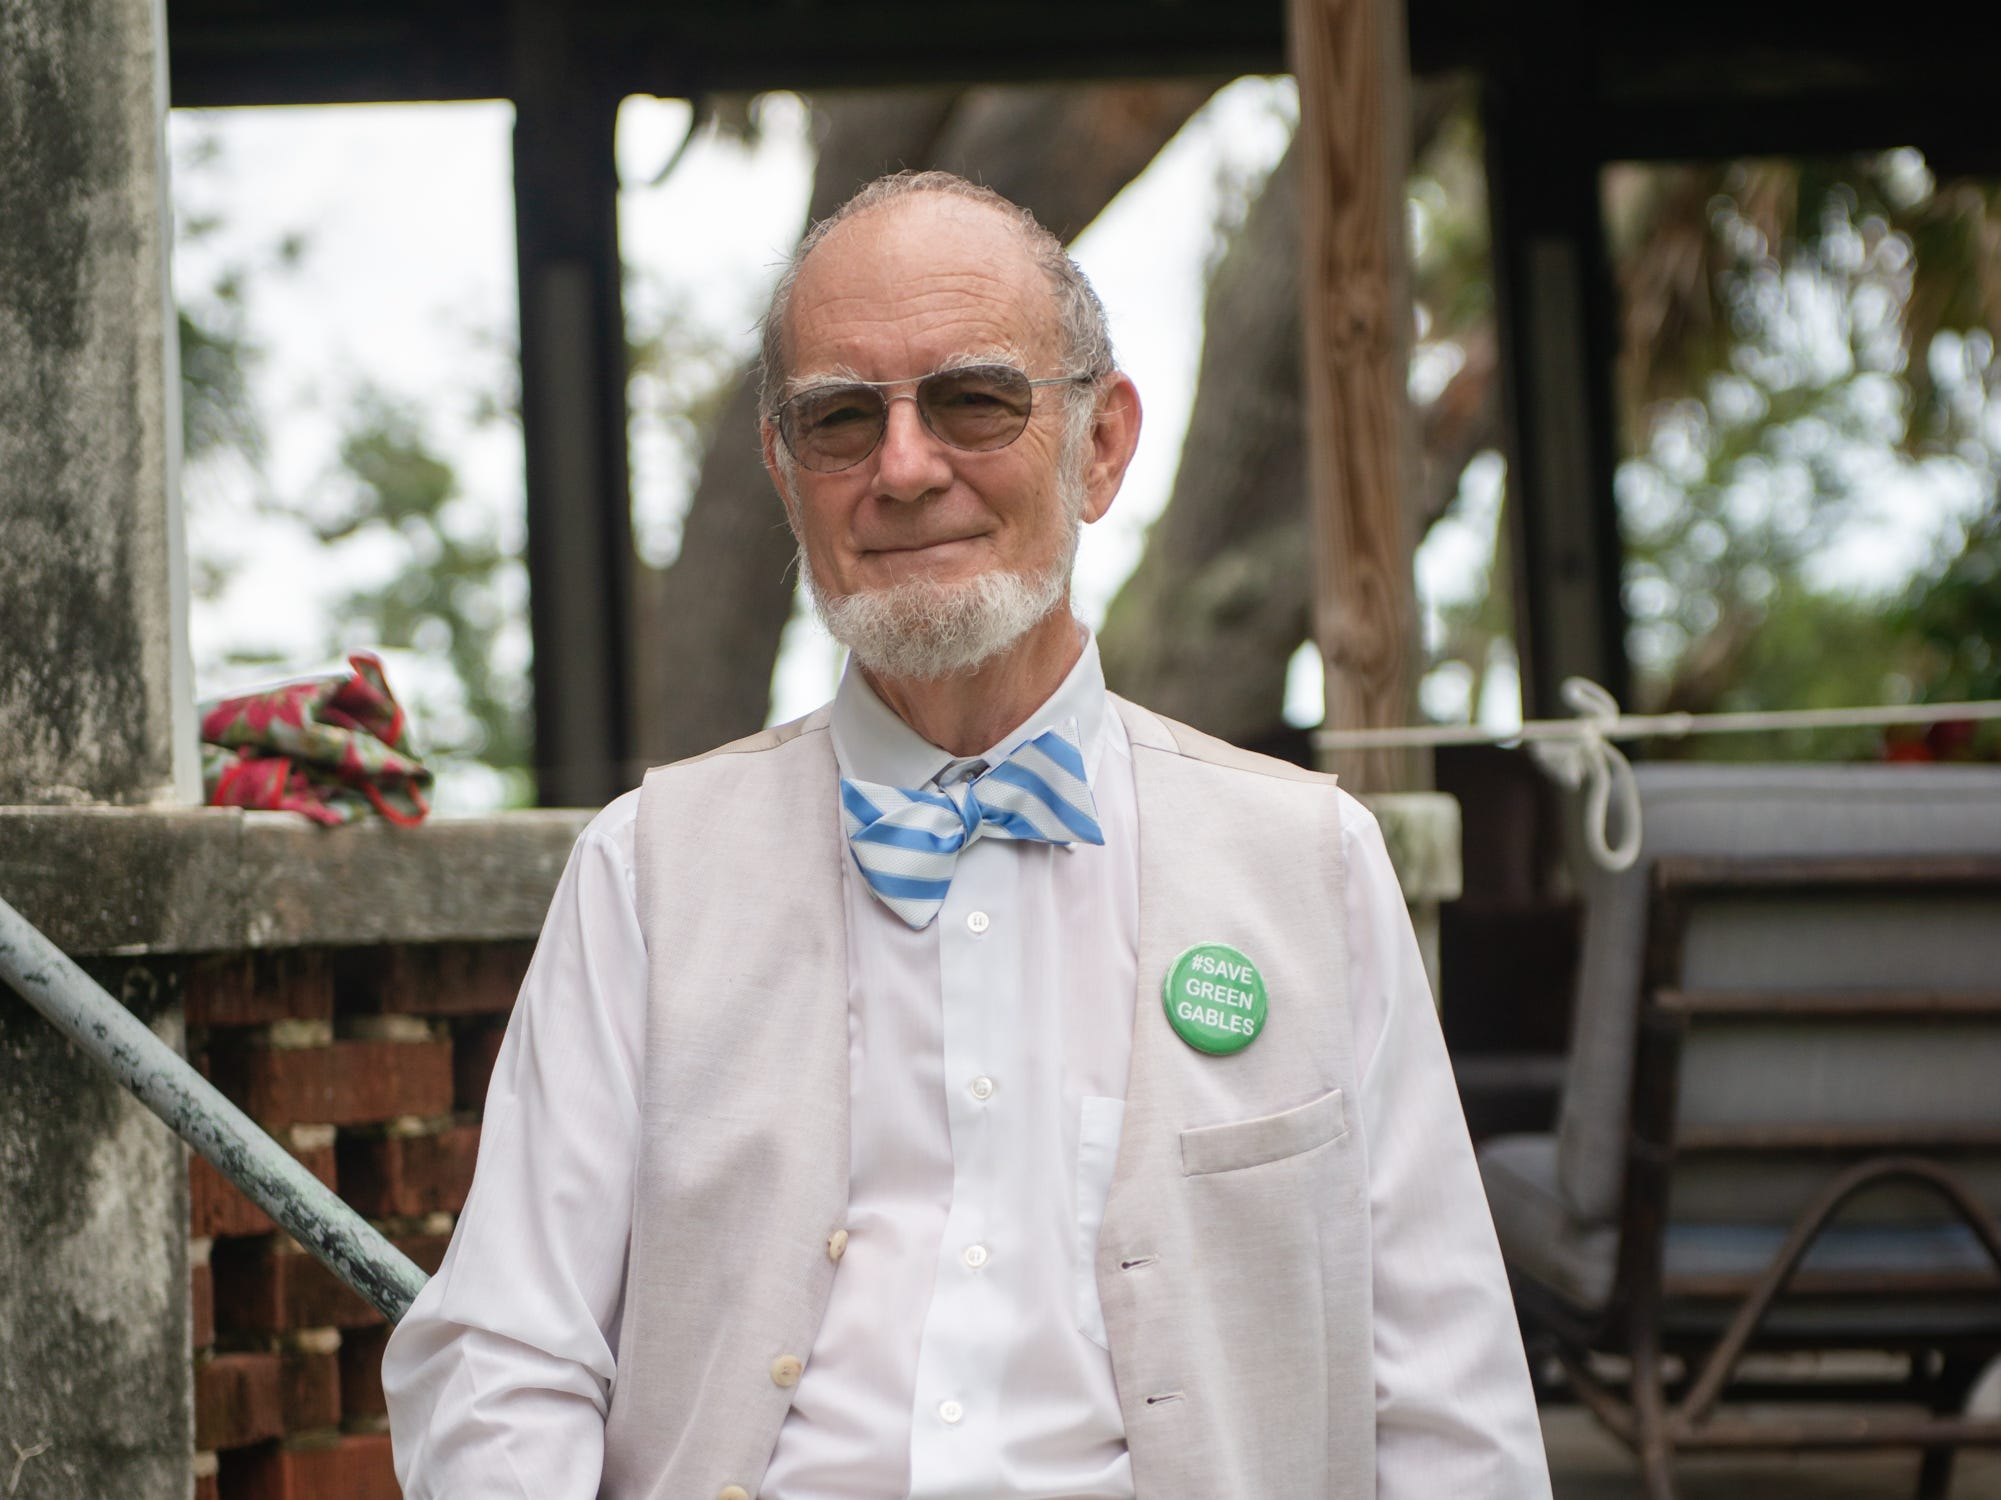 John Daly, president of Green Gables at Historic Riverview Village, Inc., at the Christmas in July event, which raised money to restore the Green Gables Victorian house in Melbourne.